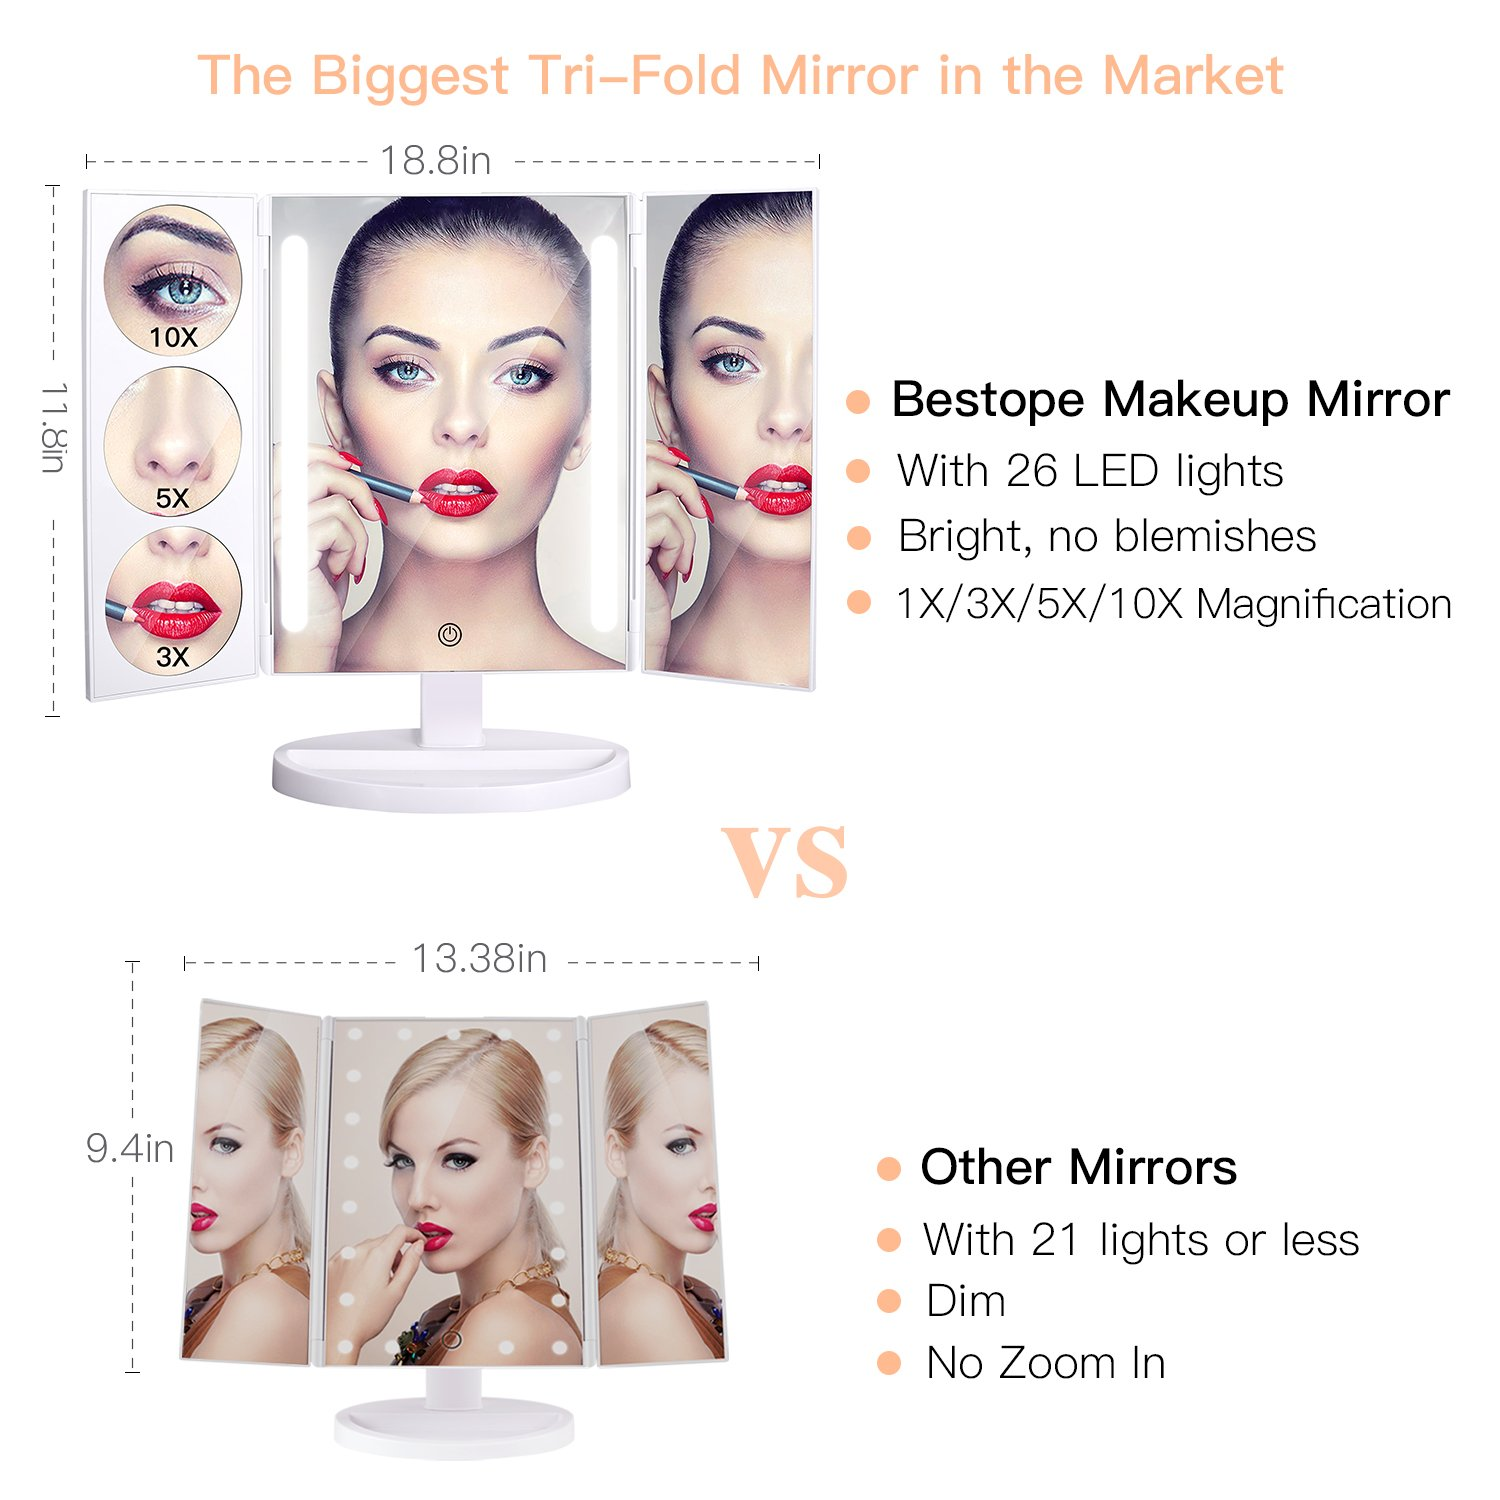 BESTOPE Makeup Mirror Oversize 18.8inch Lighted Vanity Mirror with 10X/5X/3X Magnification, 26 LED Light Trifold Cosmetic Mirror with 360° Rotation and Touch Screen by BESTOPE (Image #1)